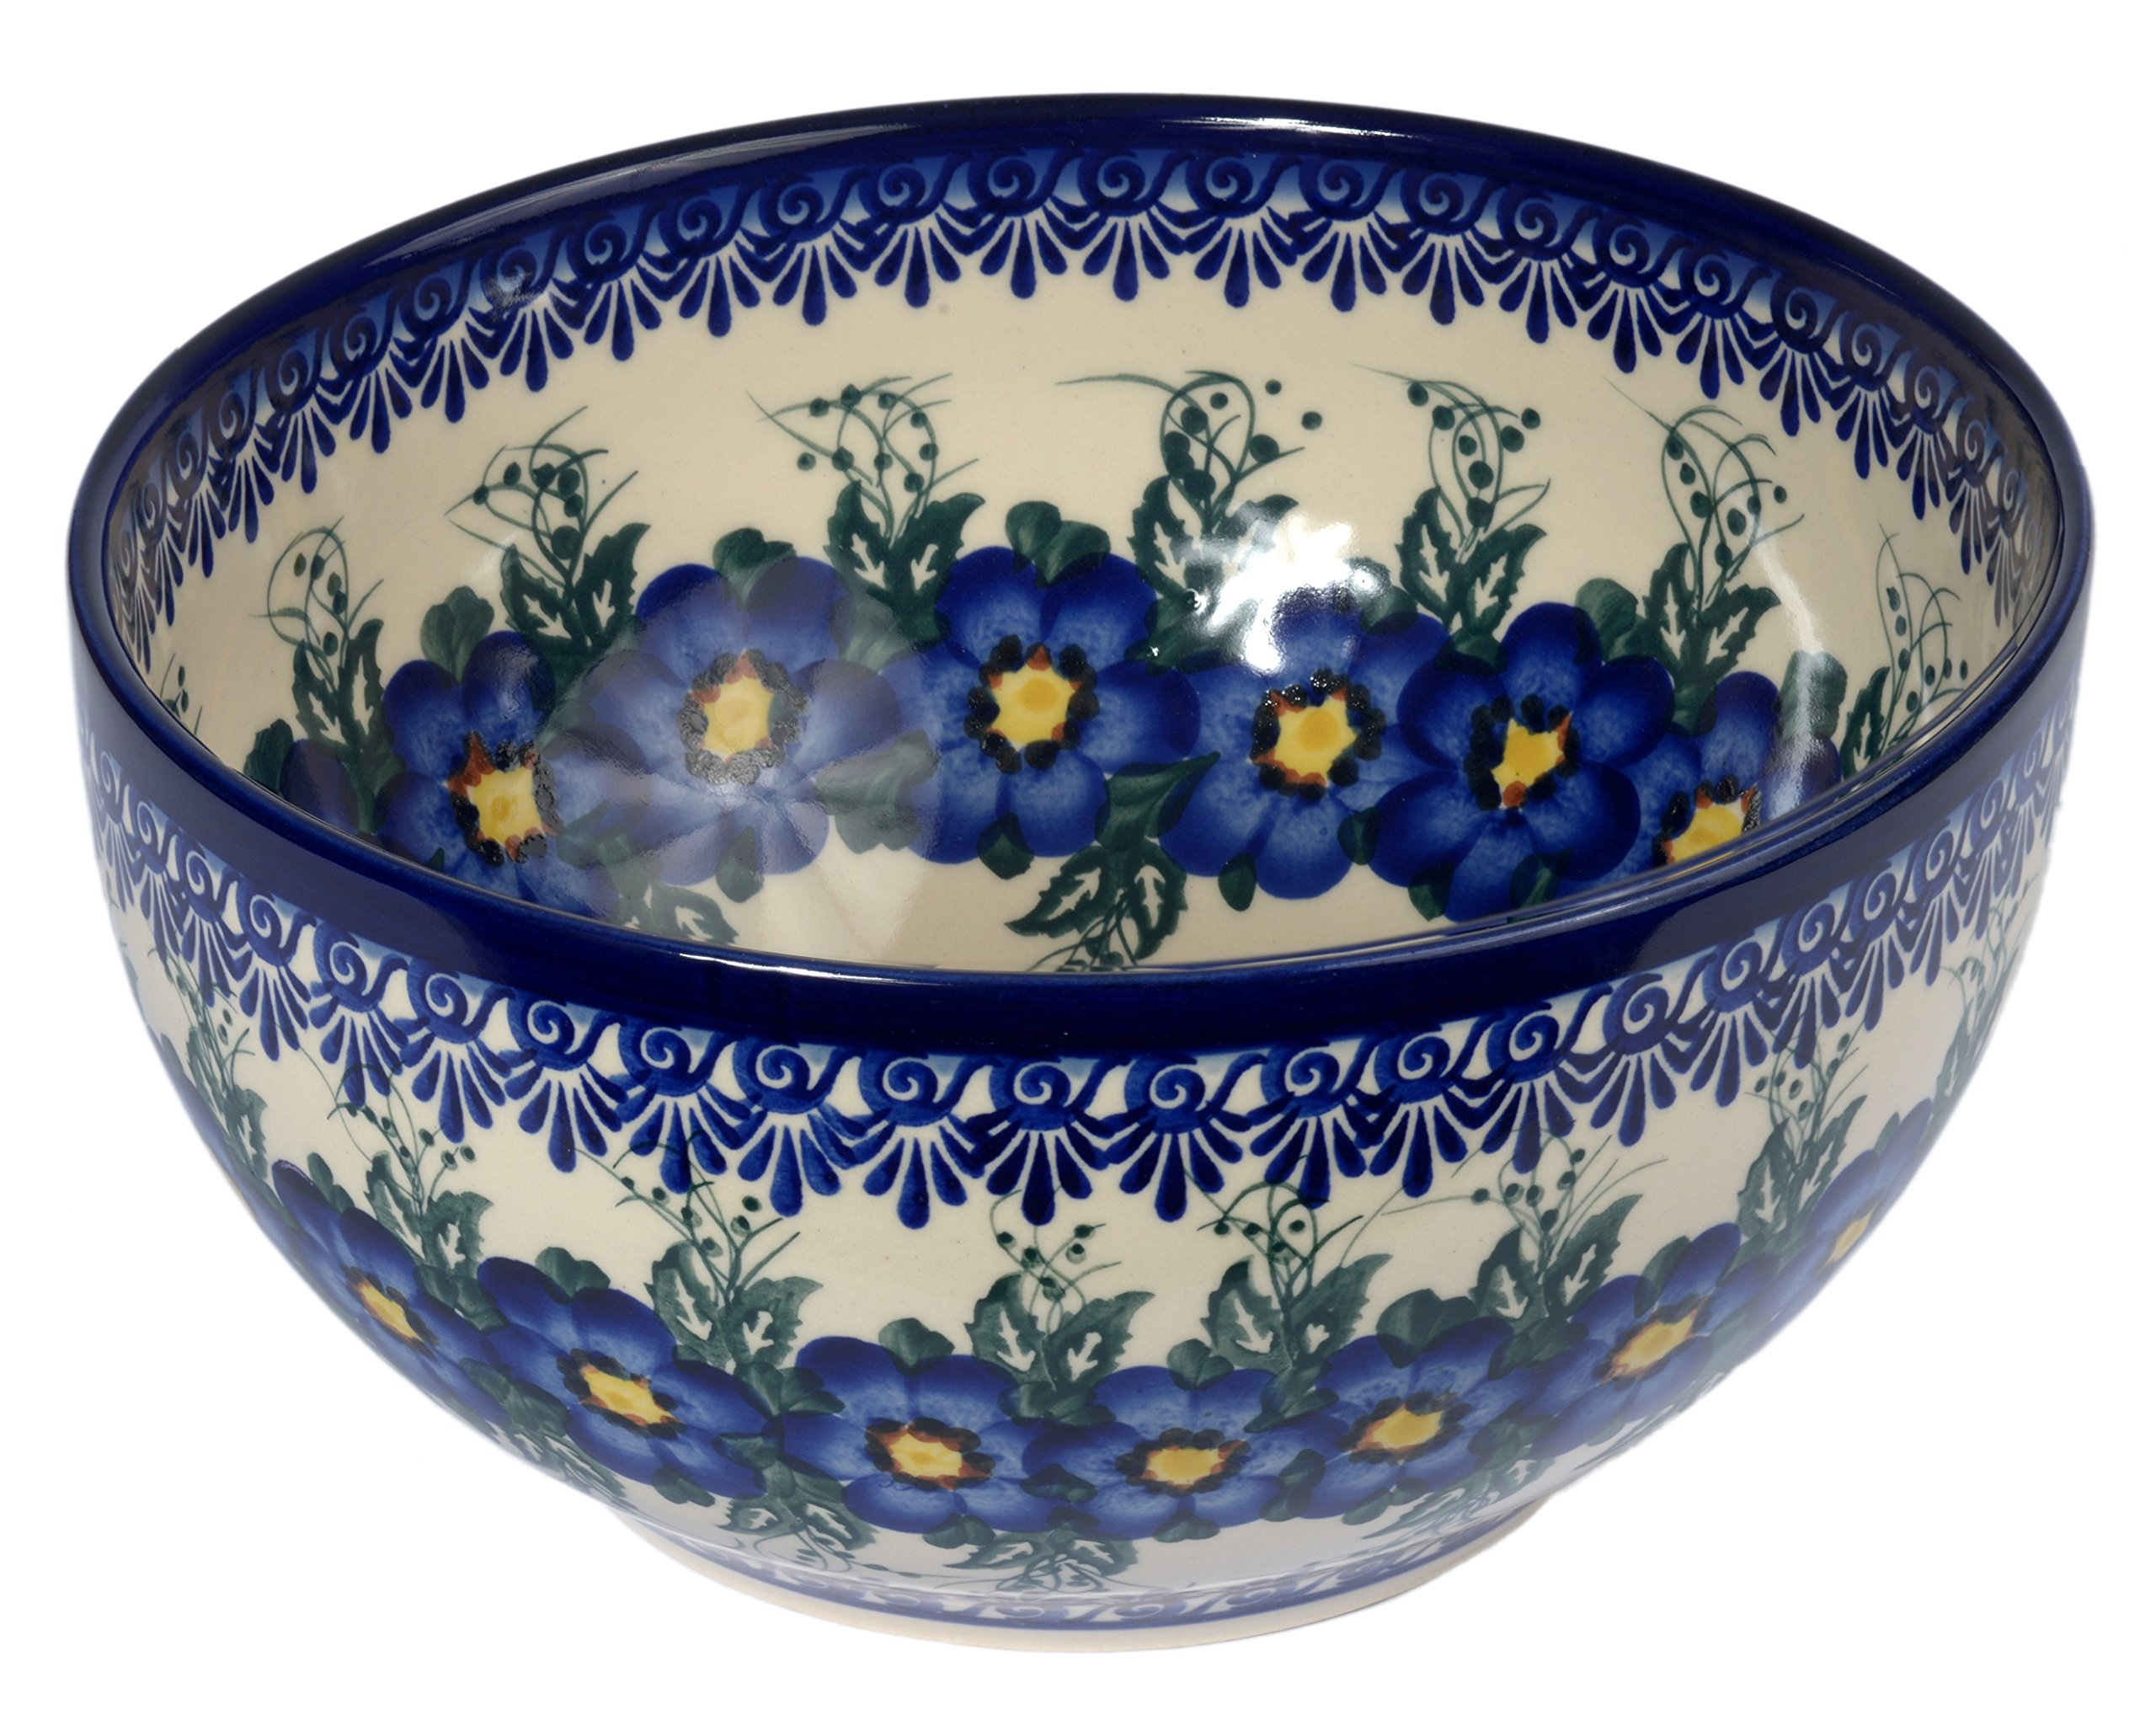 Traditional Polish Pottery, Handcrafted Ceramic Salad or Fruit Bowl 2.8l (d.24cm), Boleslawiec Style Pattern, M.705.Pansy